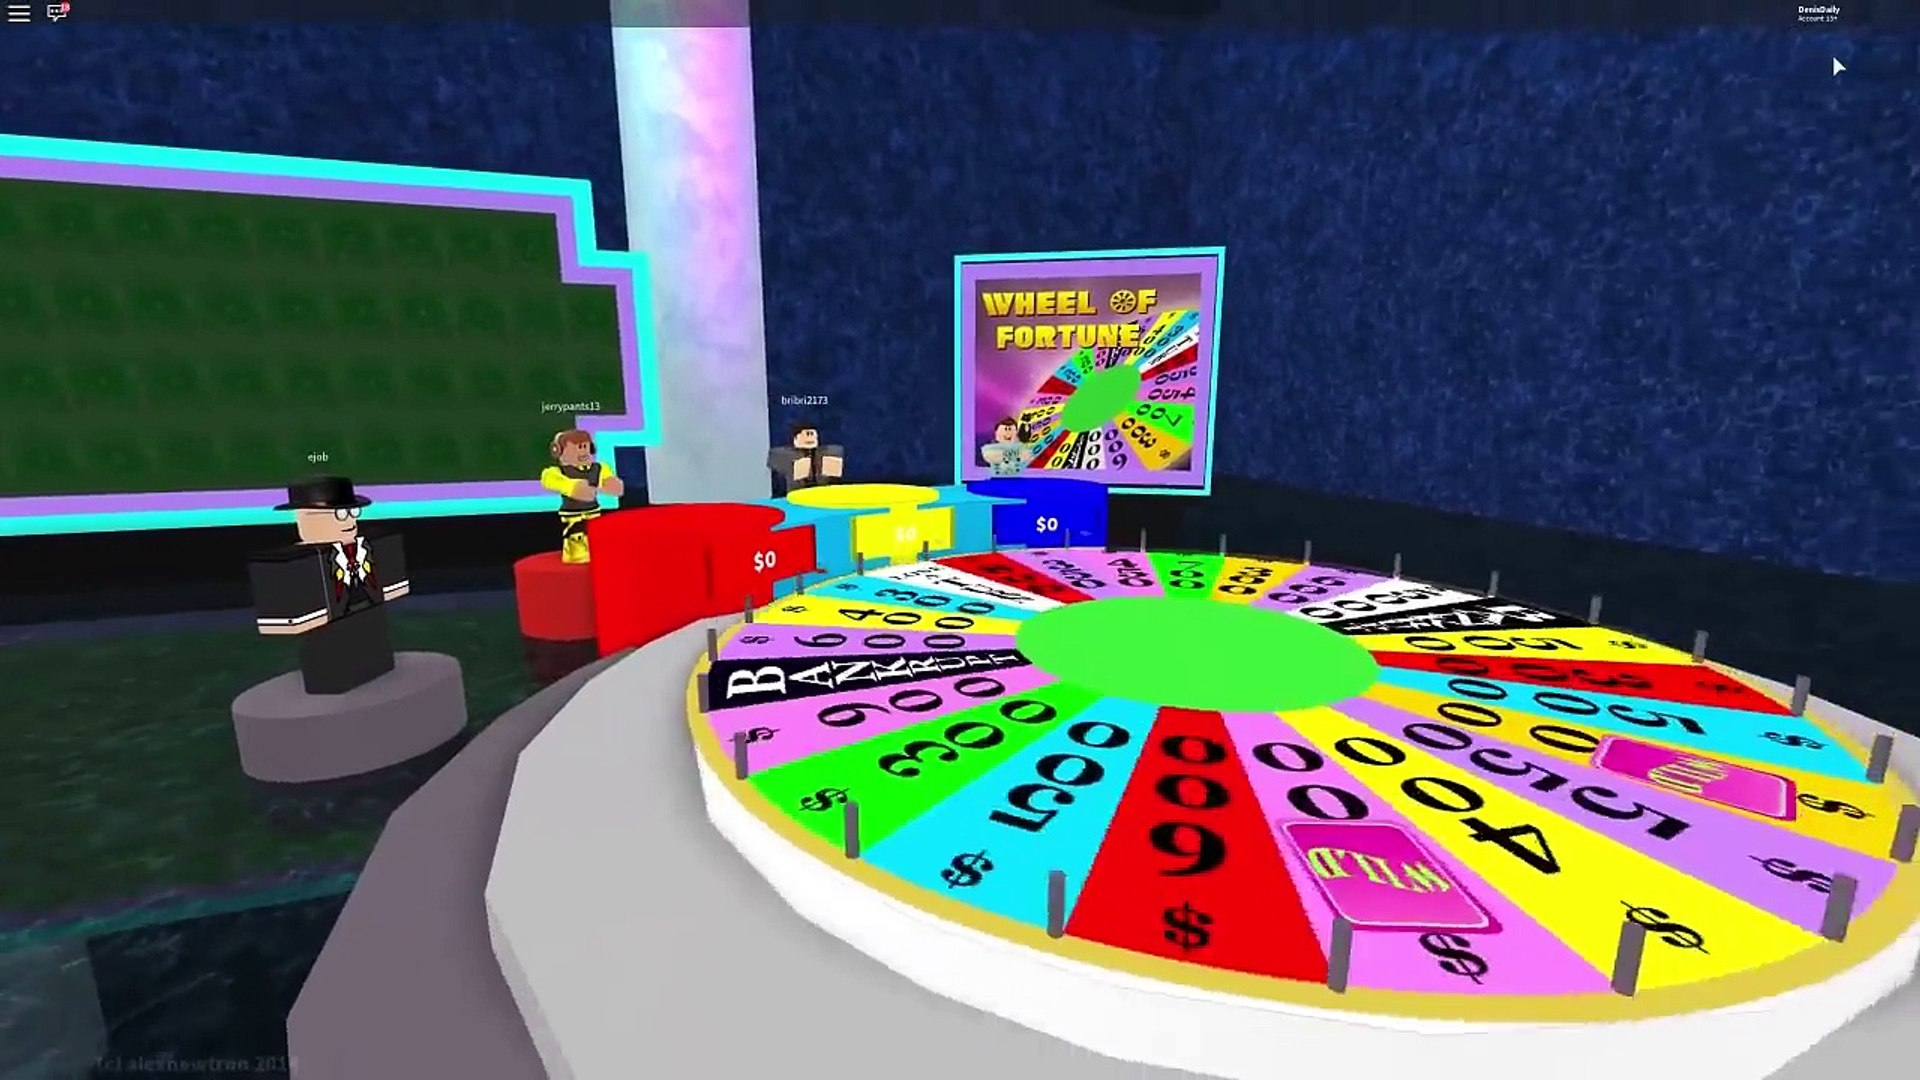 Roblox Adventures Will You Win Die Or Be Saved By Luck Wheel Of Fortune - kaelin on games roblox